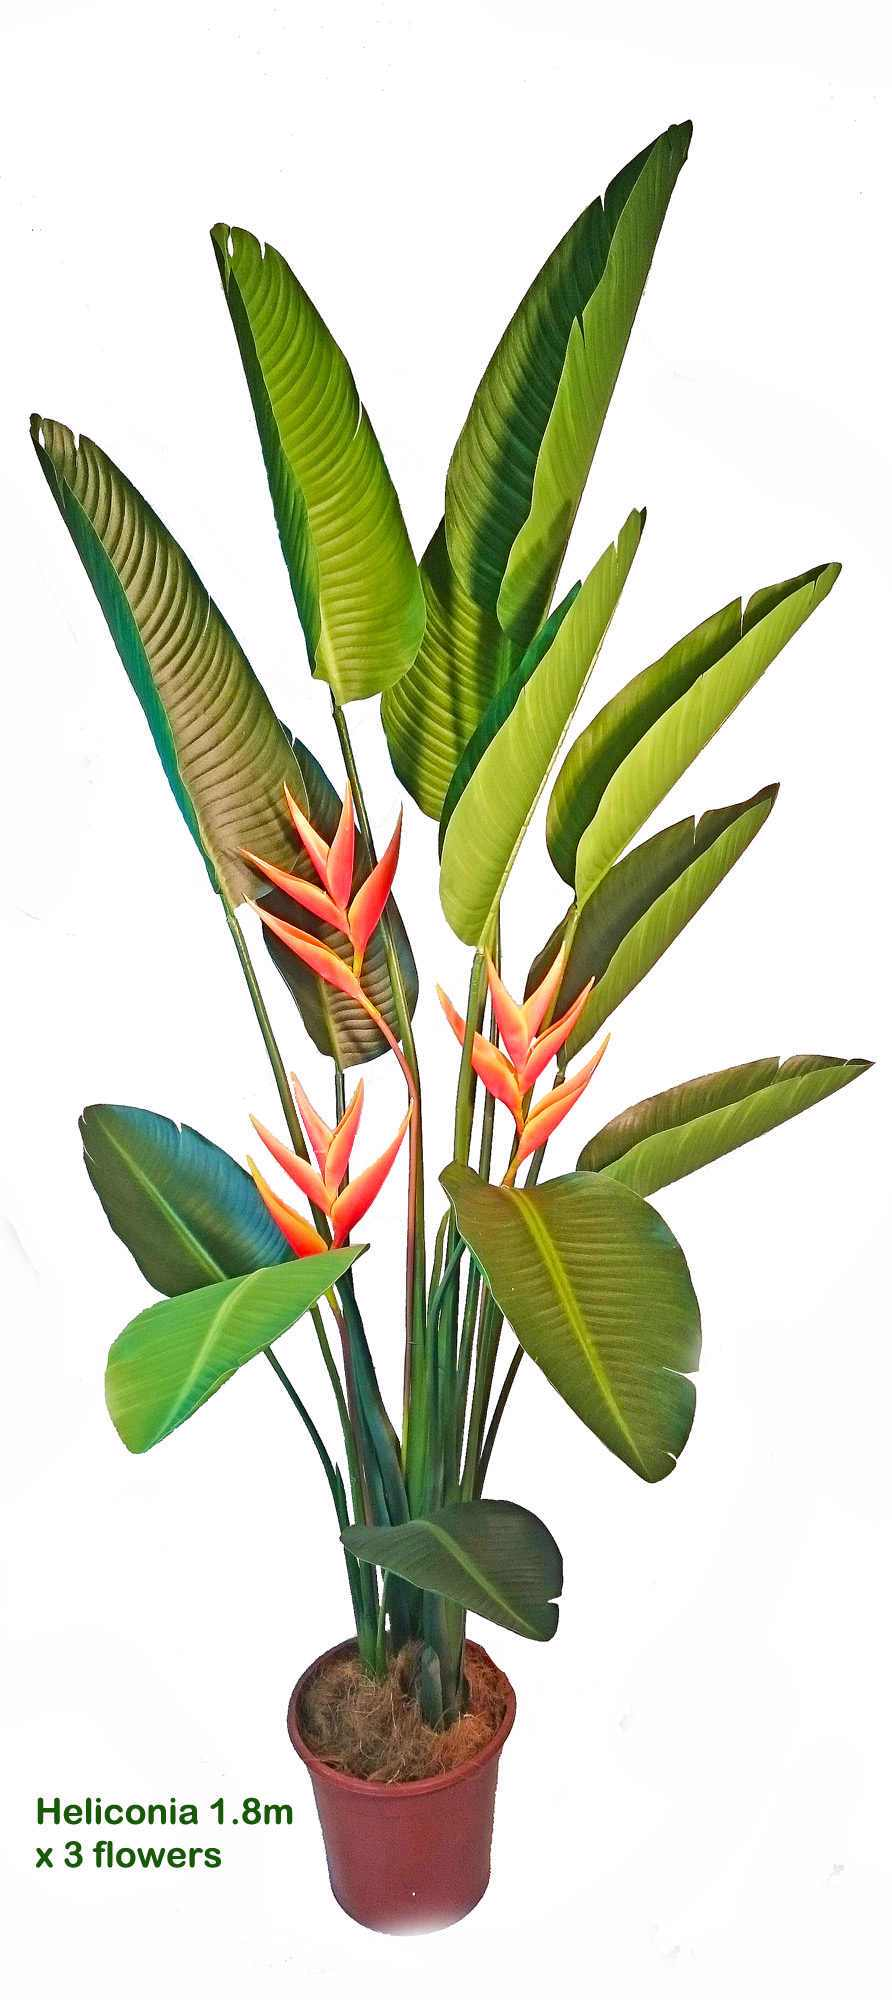 Heliconia Palms- Flowering 1.5m with 2 flowers